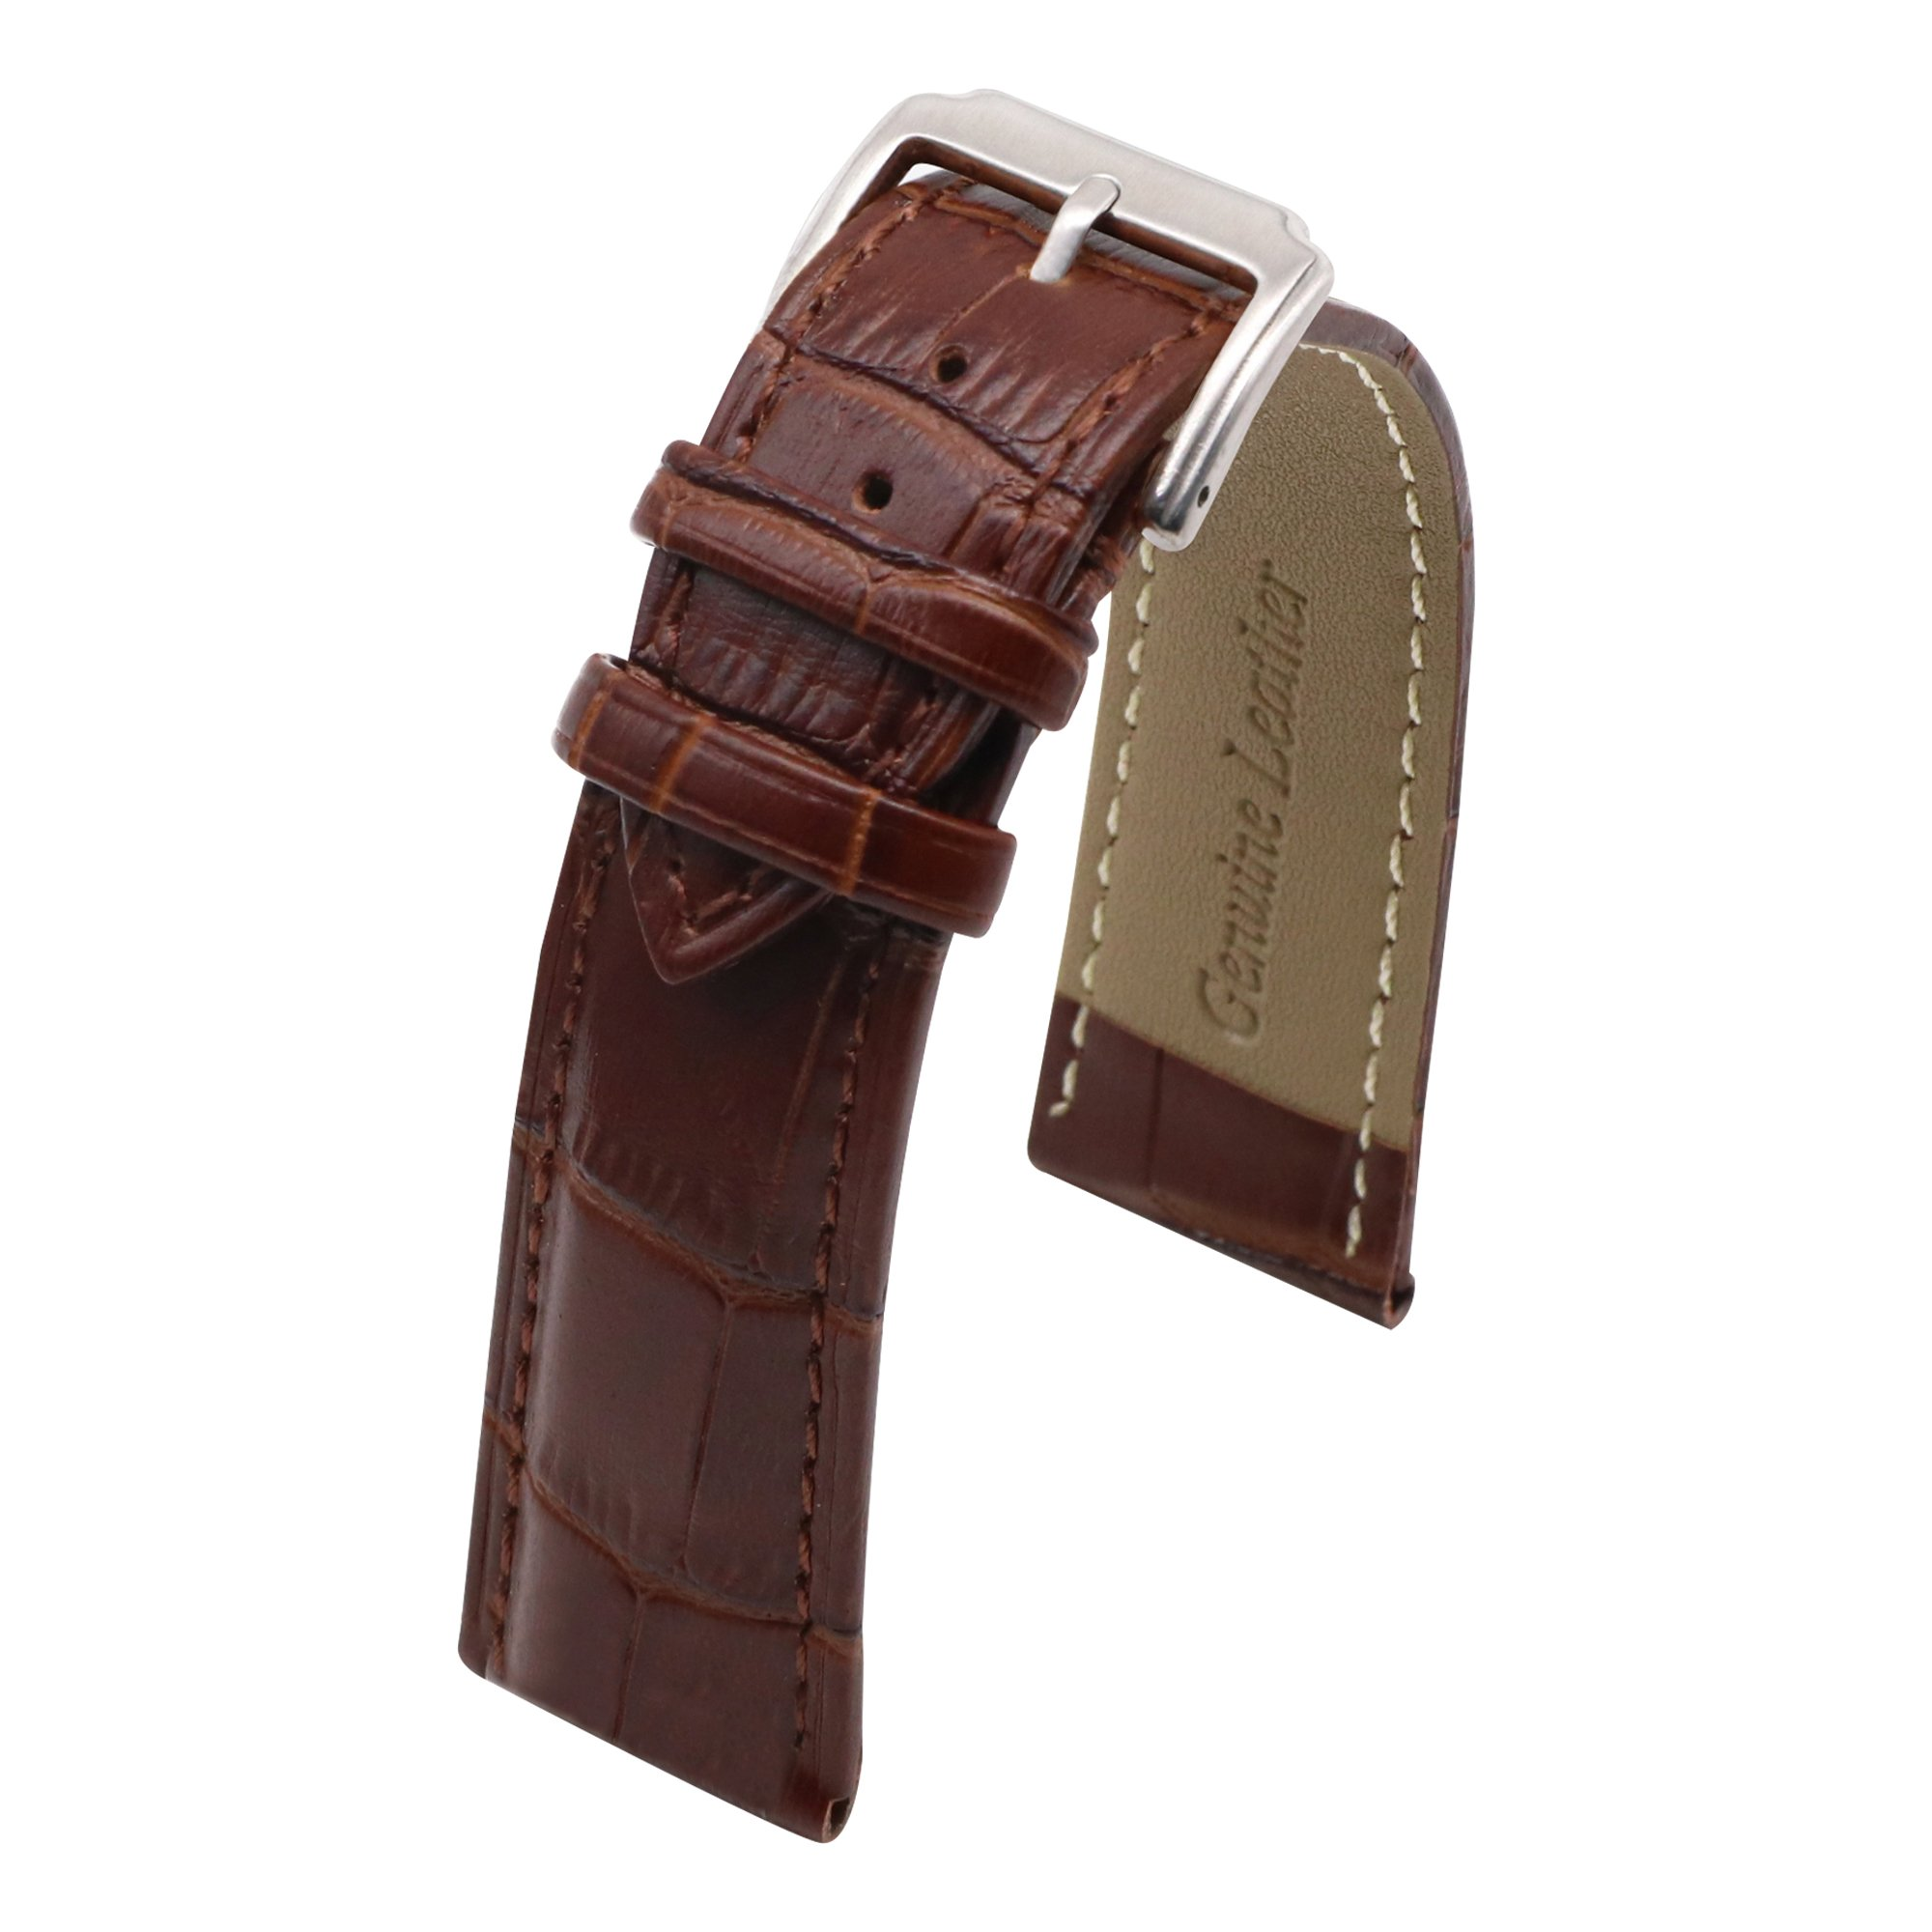 AUTULET Brown Classic Leather Watch Belt 15MM Bracelet Watch Band